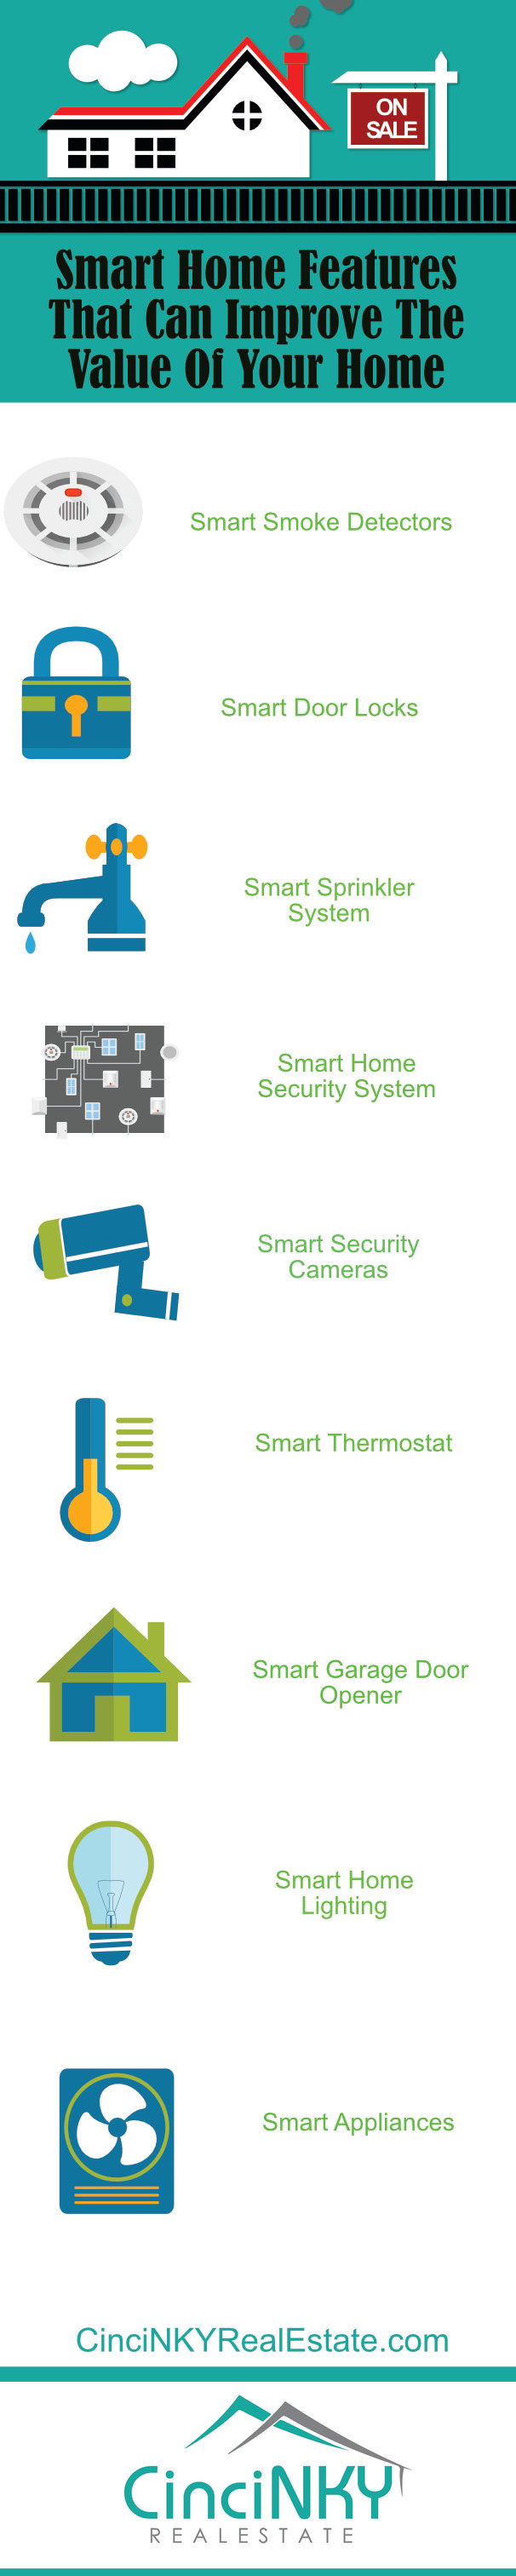 Infographic picture Smart Home Features That Can Improve The Value Of Your Home